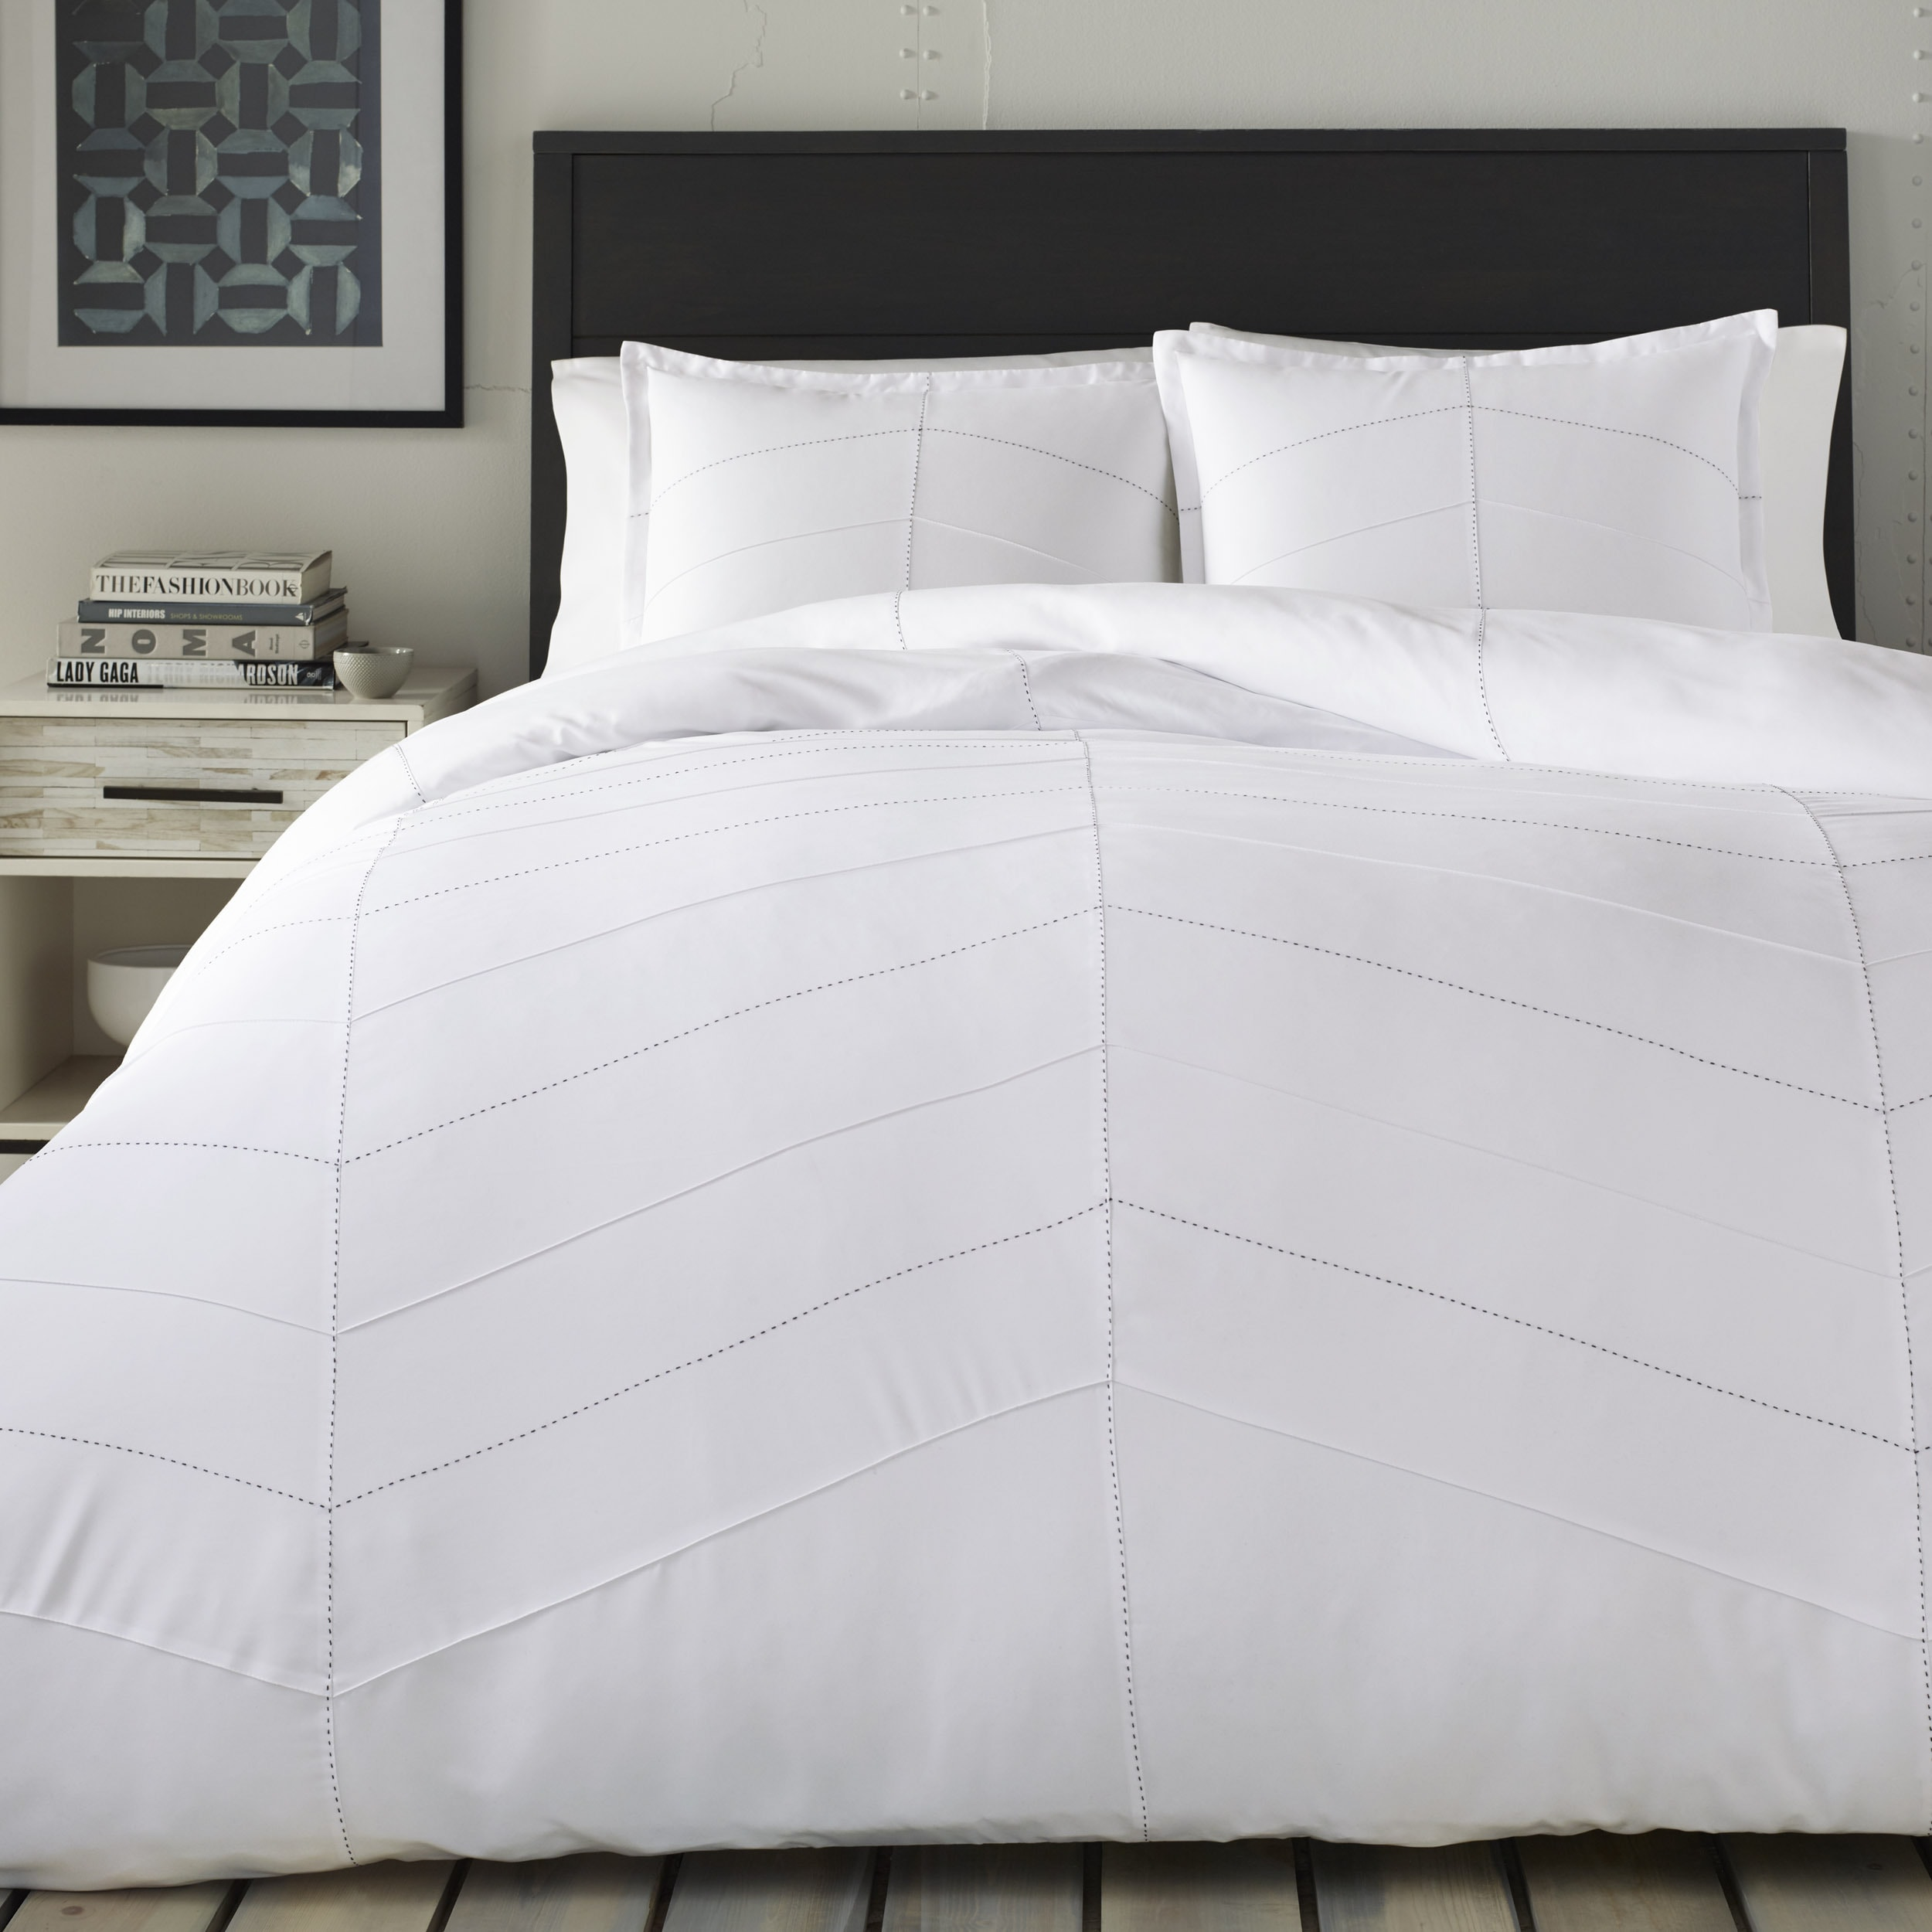 noelle park bedding piece free comforter bath on overstock product bed com madison cotton shipping set